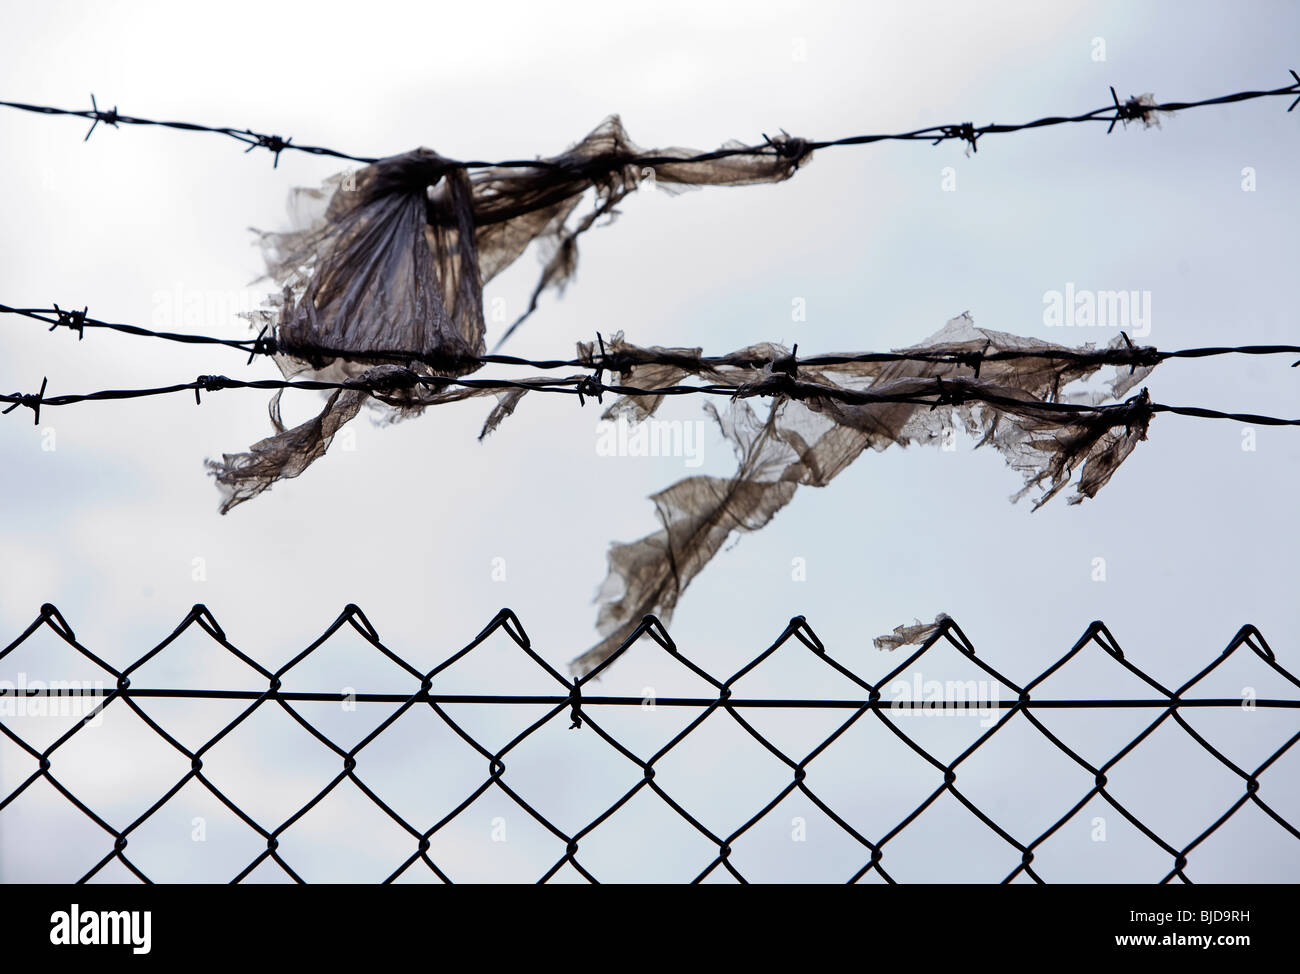 Bobbed Wire Fence Stock Photos & Bobbed Wire Fence Stock Images - Alamy